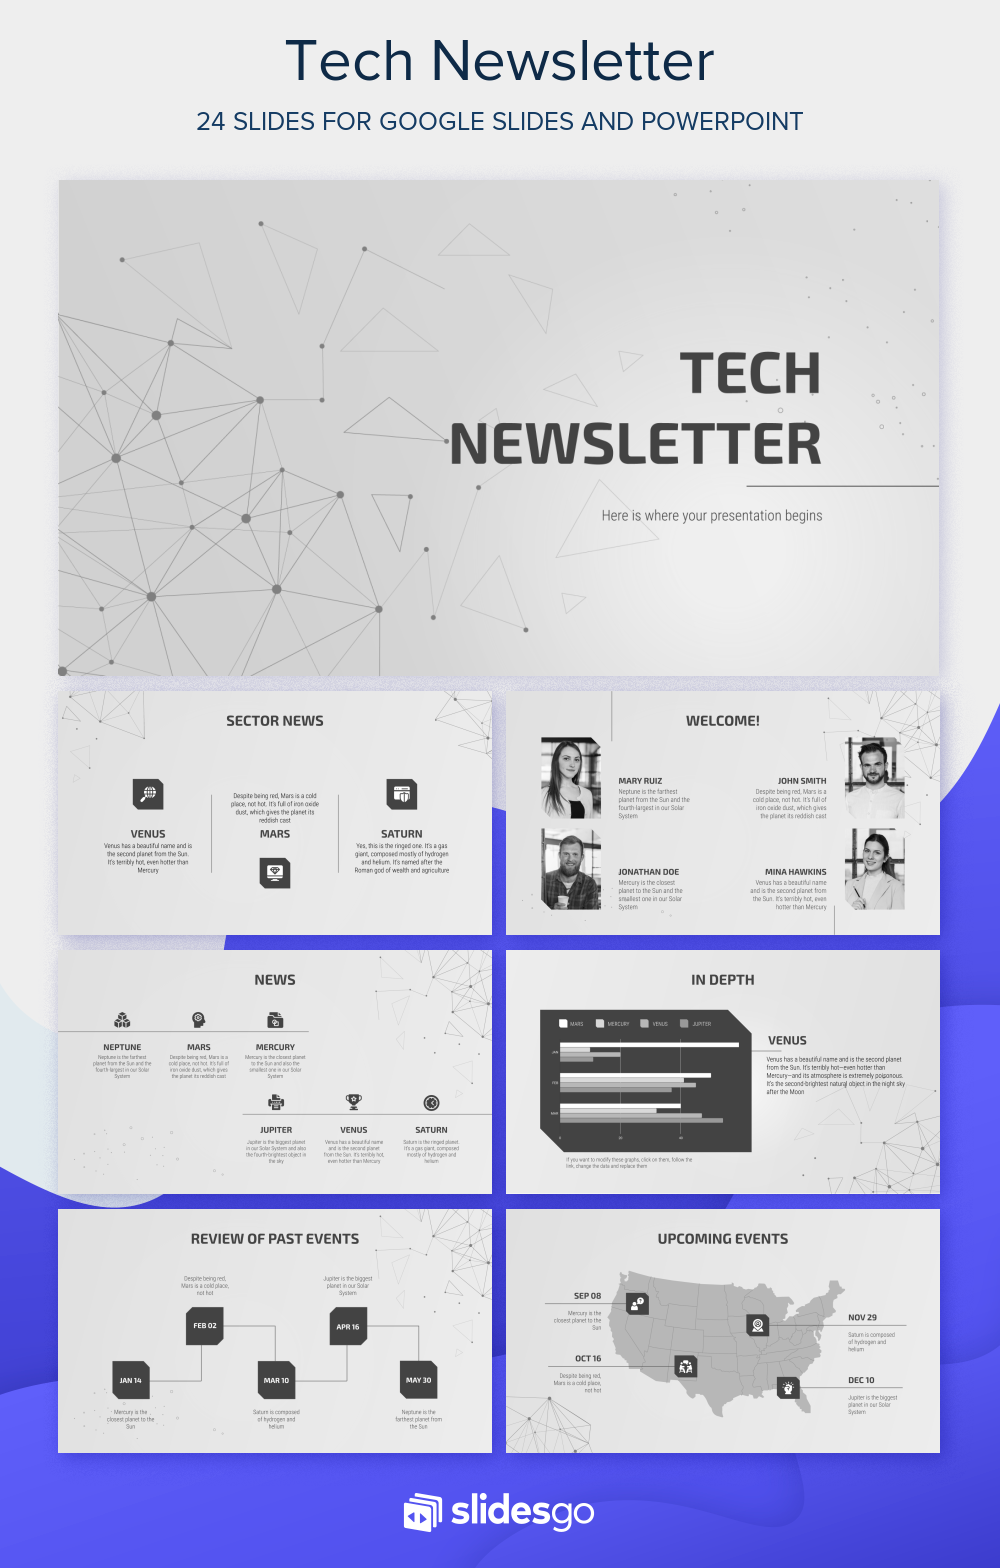 Tech Newsletter Presentation Free Google Slides theme